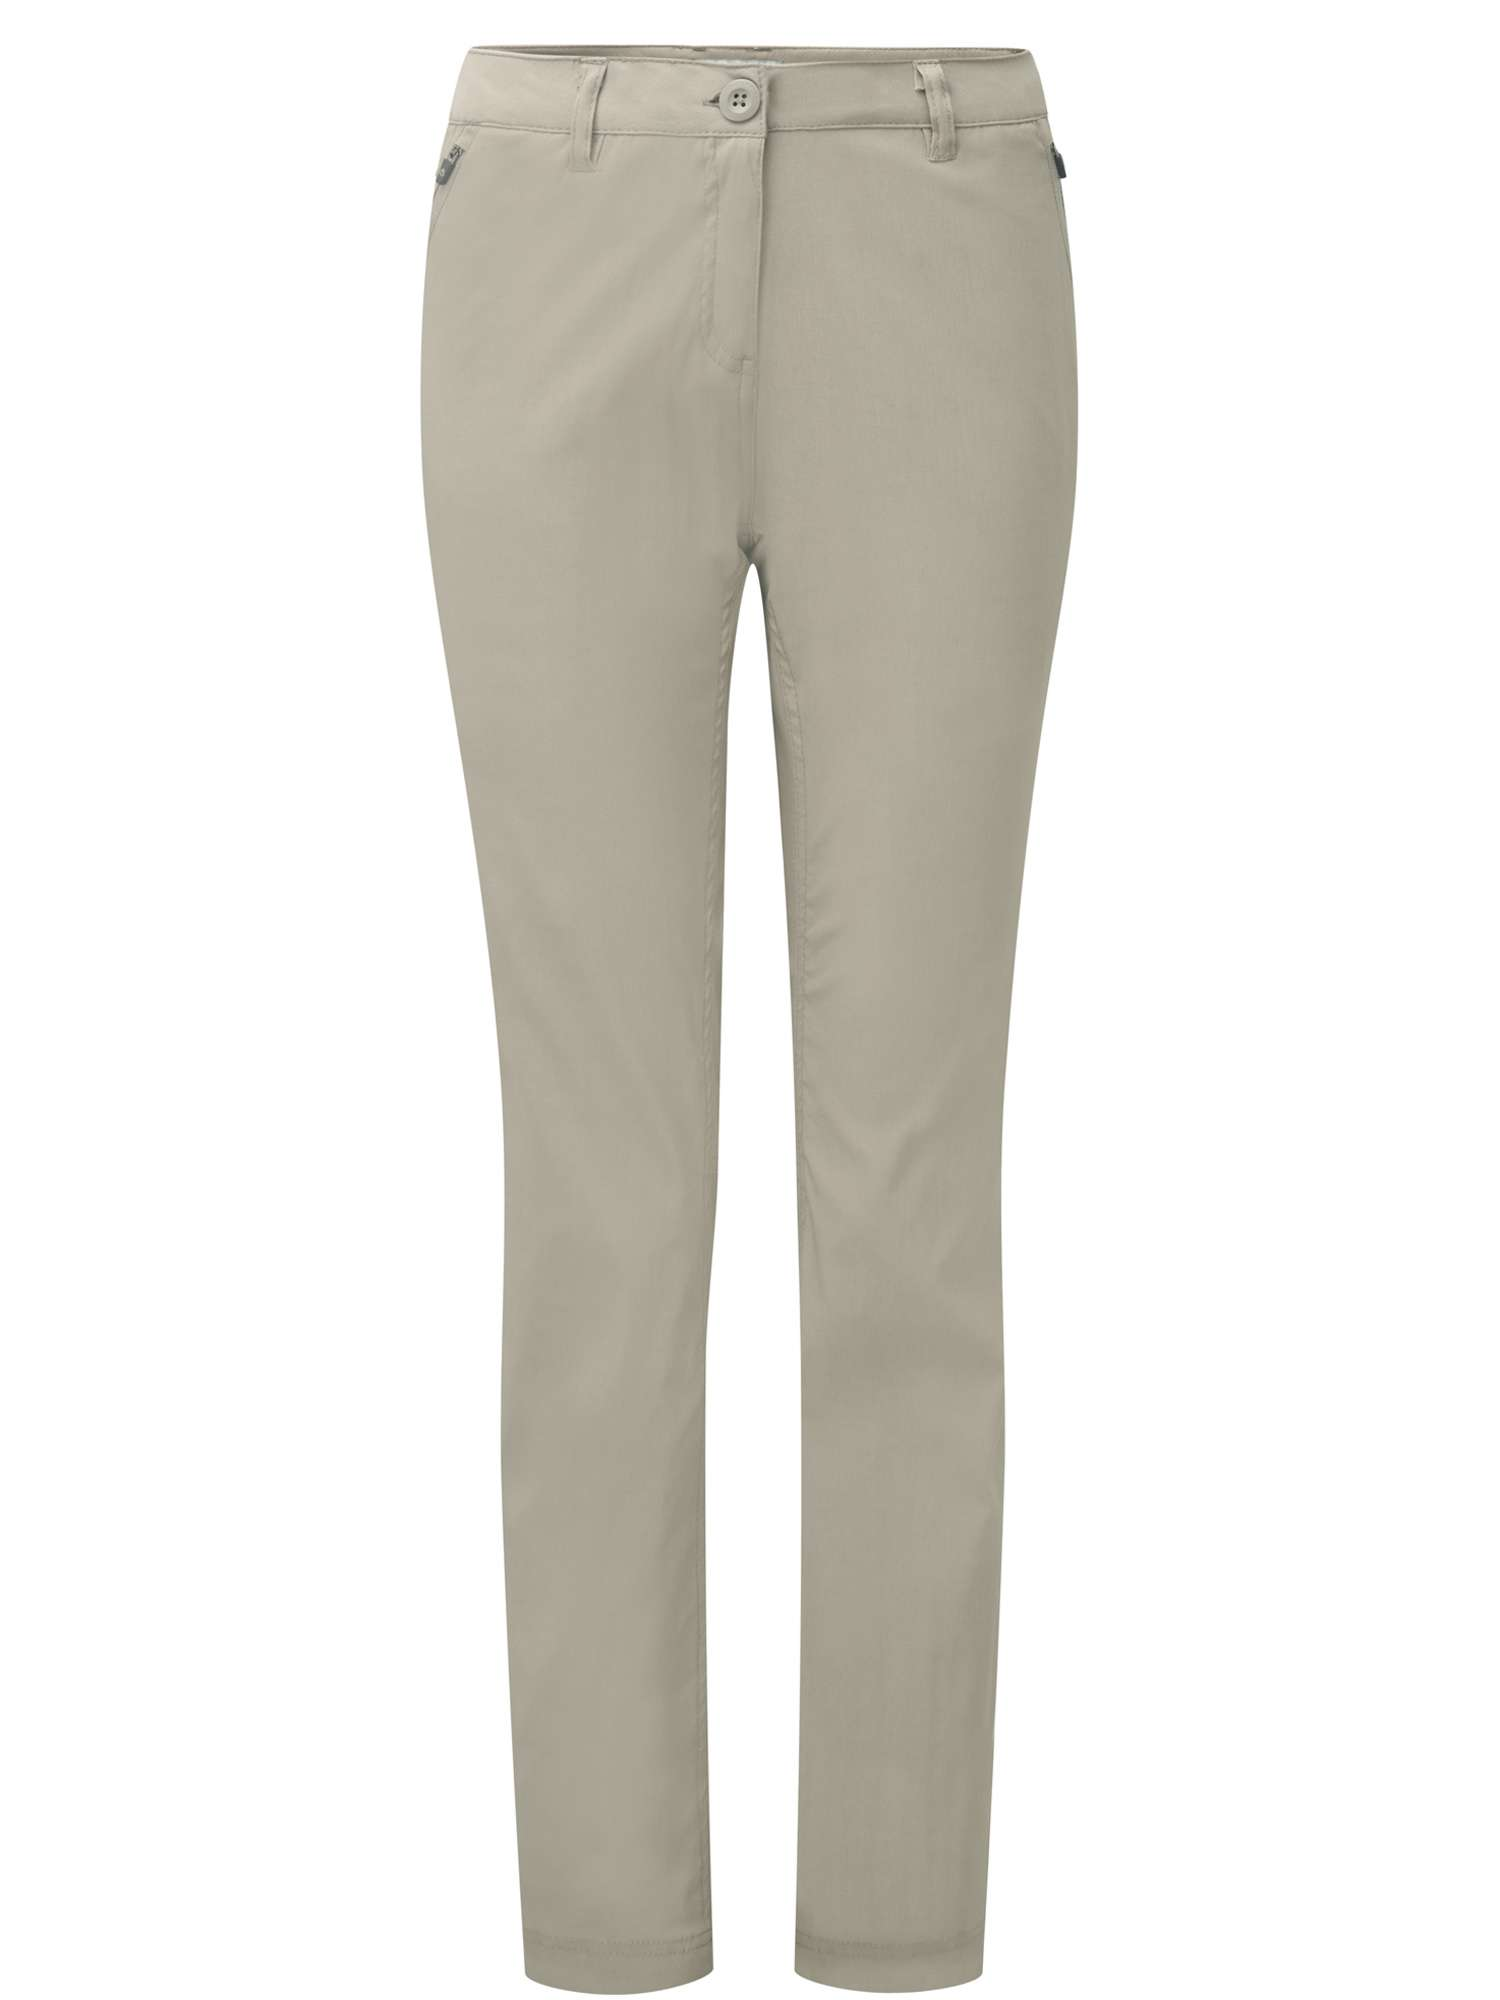 Trousers Craghoppers Stretch Trousers Stretch Kiwi` Kiwi` Craghoppers Kiwi` Pro Trousers Stretch Craghoppers Pro Pro 8Txqg60